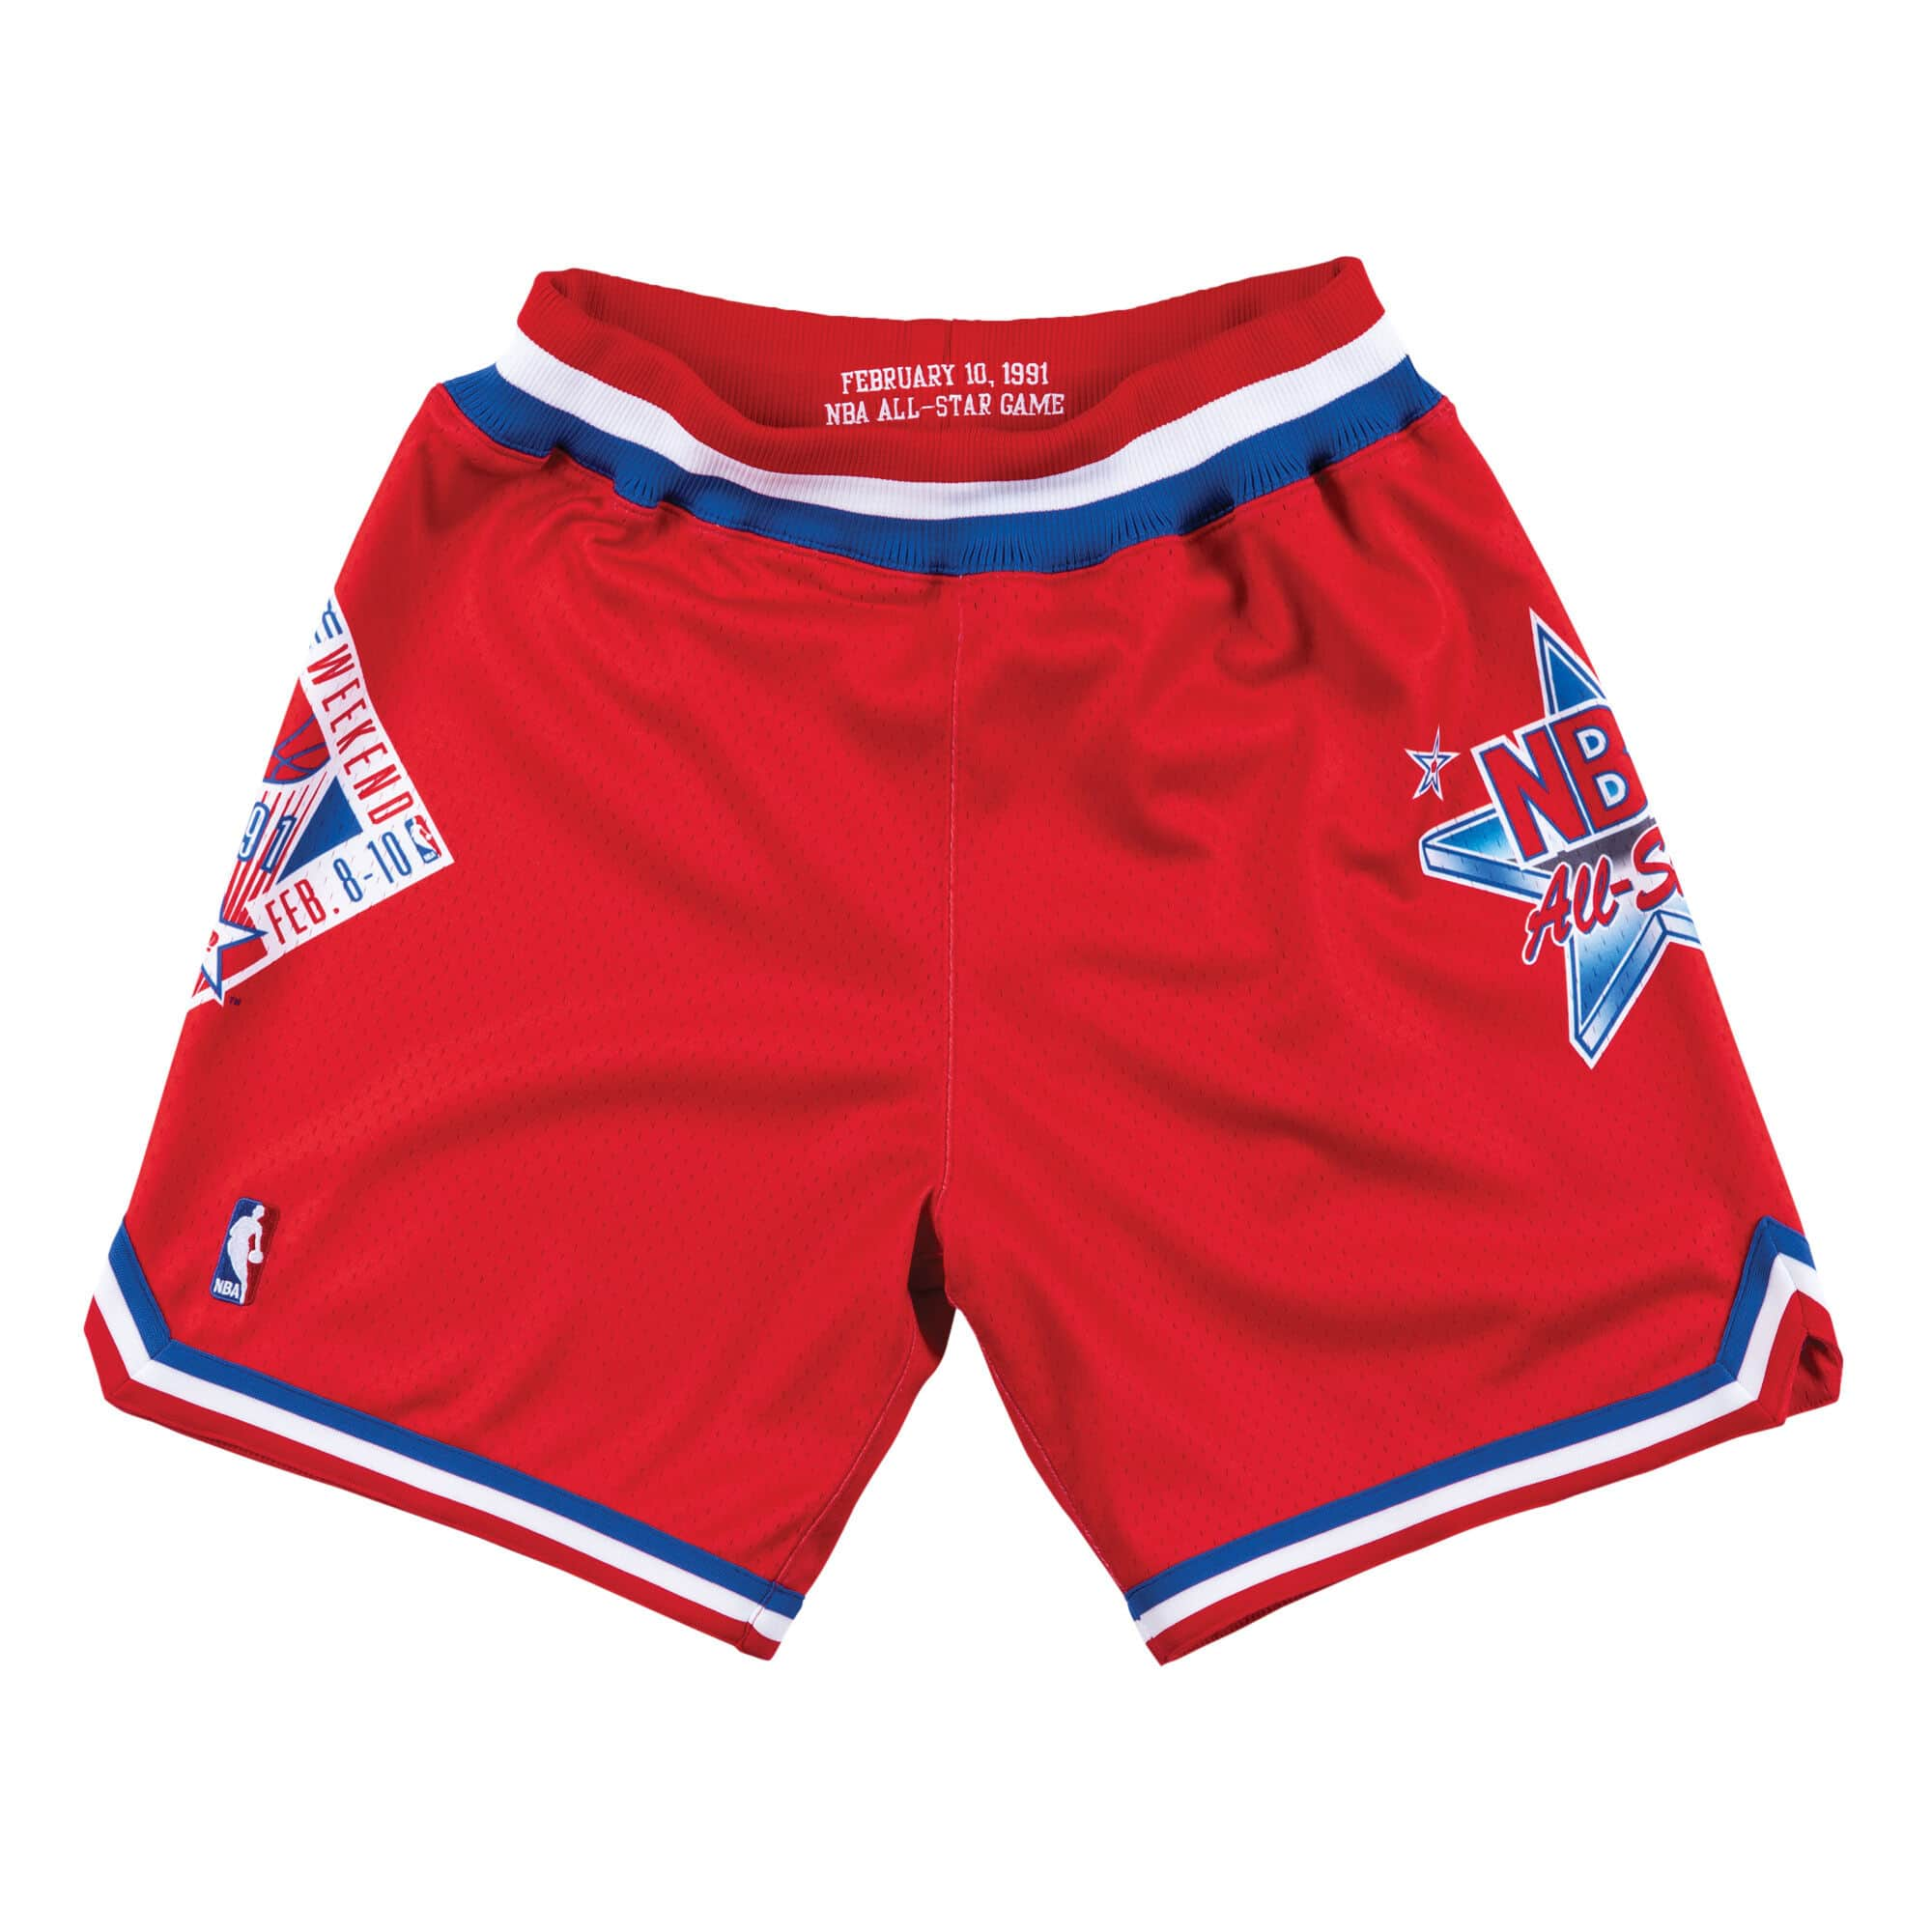 Authentic Shorts All-Star West 1991